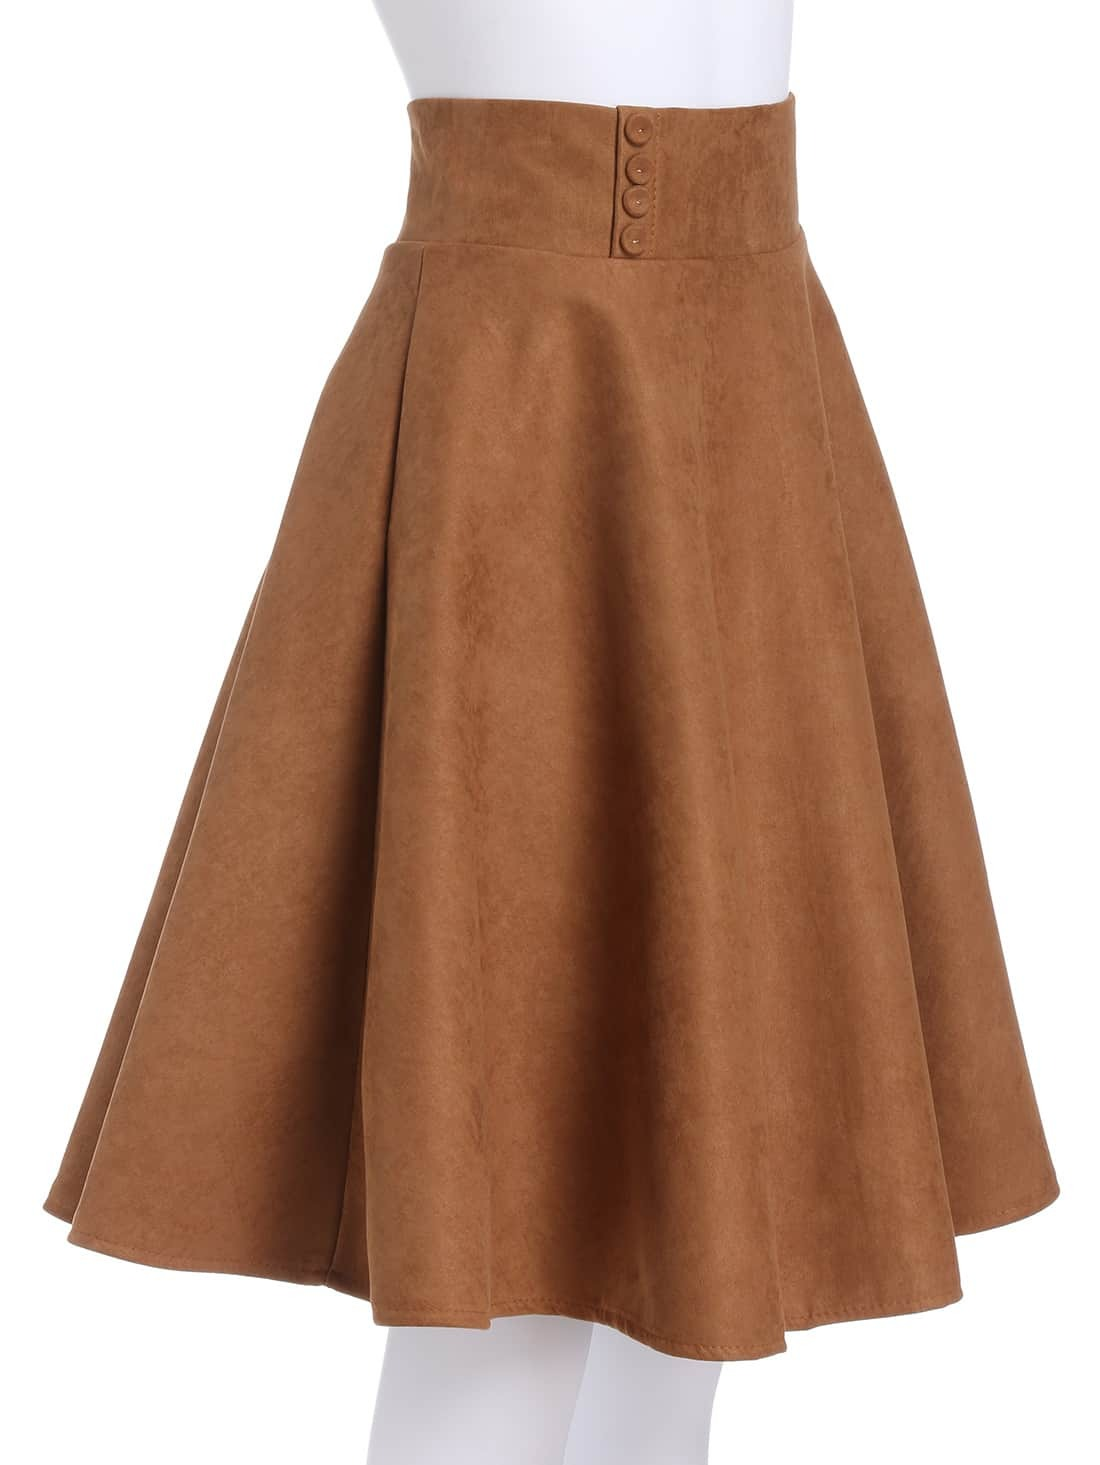 Shop flared skirt hem dress at Neiman Marcus, where you will find free shipping on the latest in fashion from top designers.